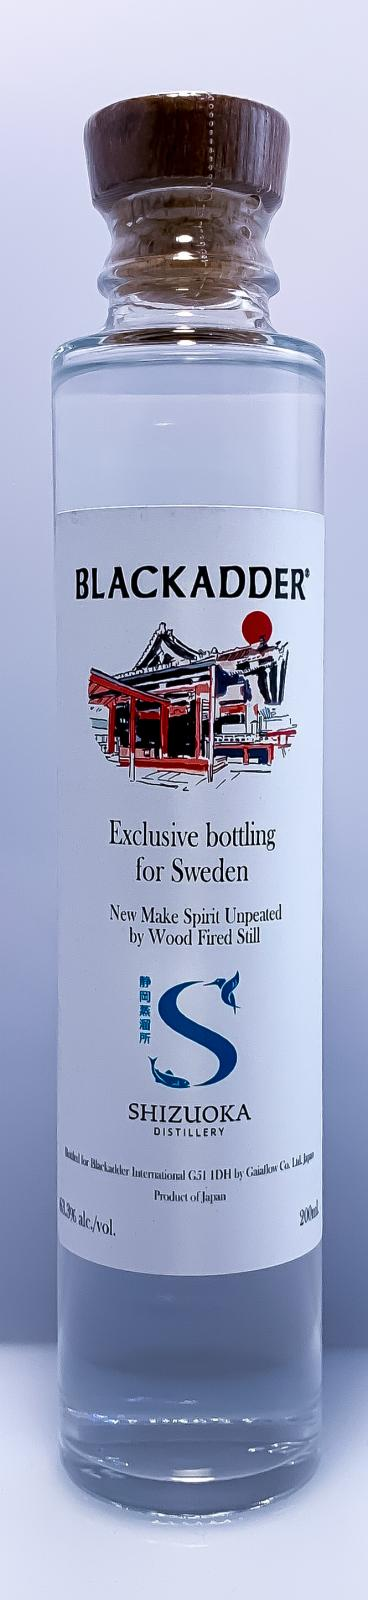 Shizuoka New Make Spirit Unpeated by Wood Fired Still